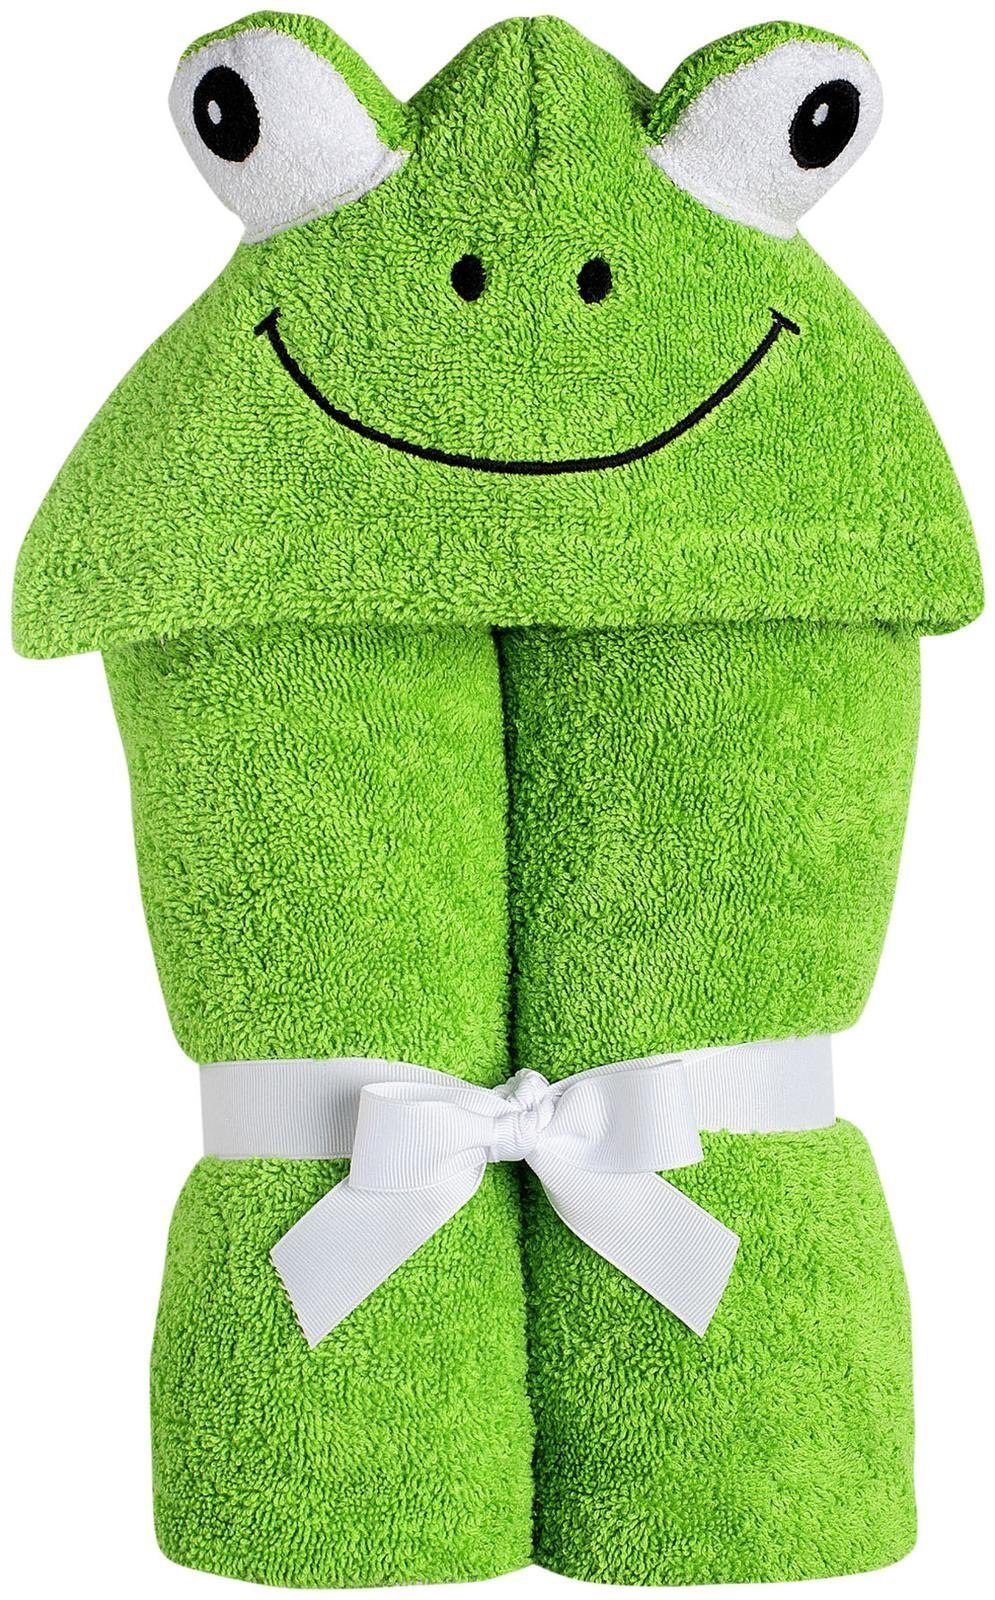 Yikes Twins Child Hooded Towel - Green Frog by Yikes Twins